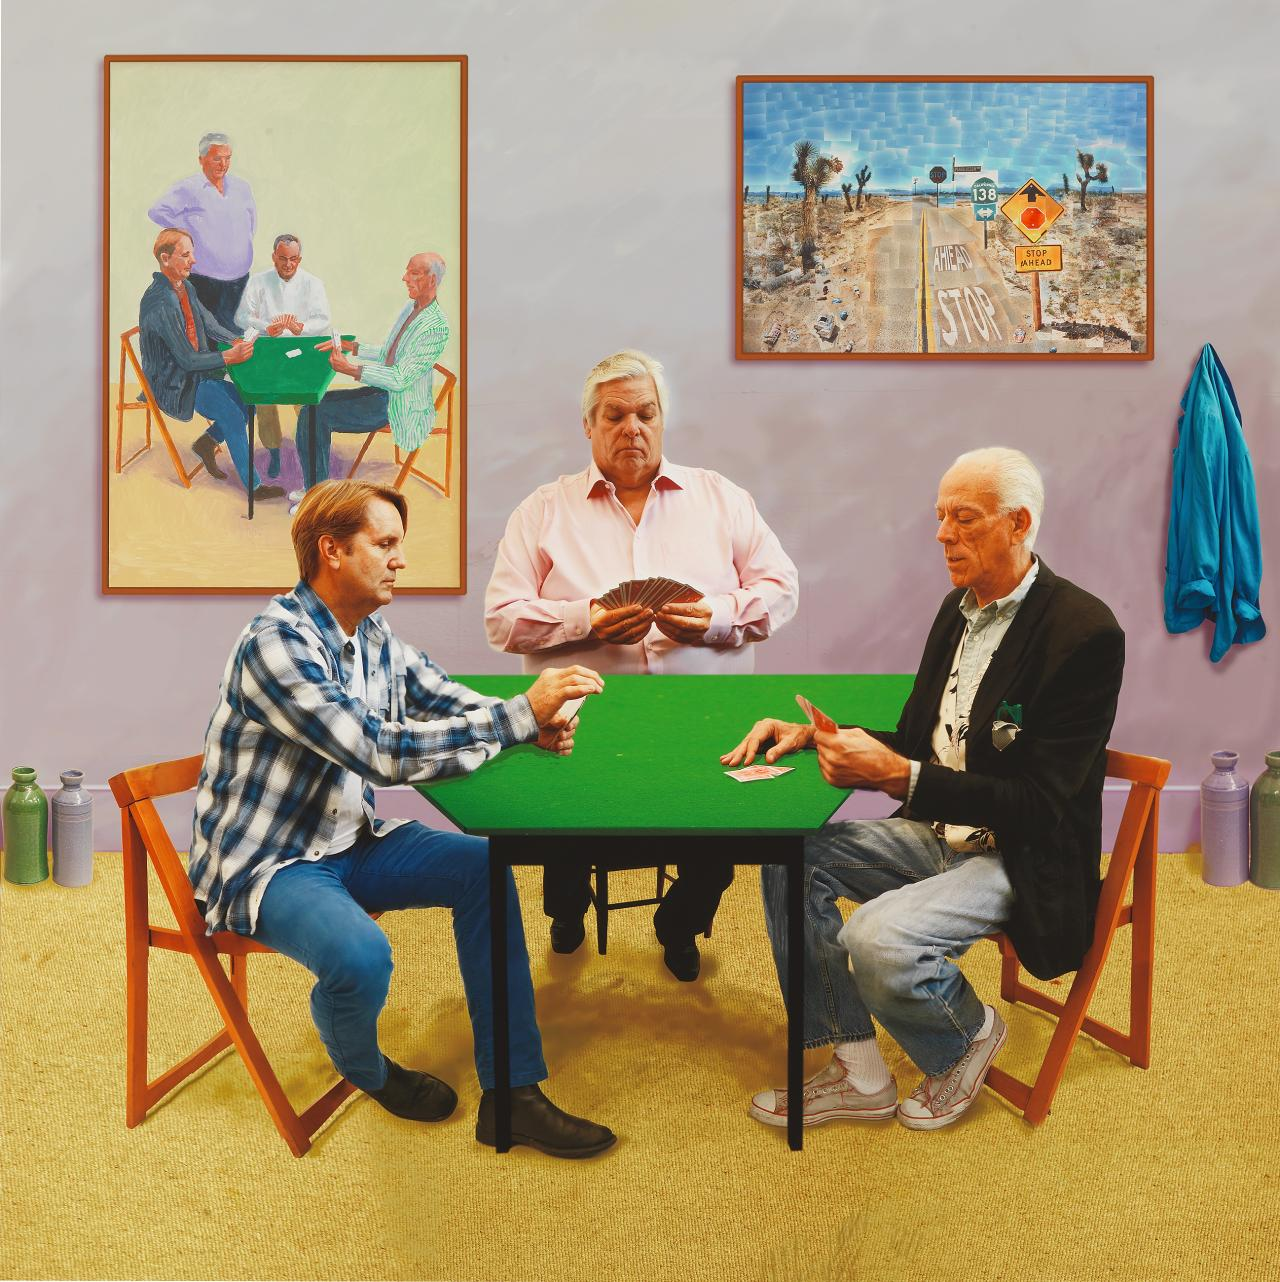 David Hockney<br/> English 1937&ndash;<br/> A bigger card players 2015<br/> photographic drawing printed on paper mounted on aluminium<br/> edition 1 of 12<br/> 177.2 x 177.2 cm<br/> Collection David Hockney Foundation<br/> &copy; David Hockney<br/> Photo Credit: Richard Schmidt